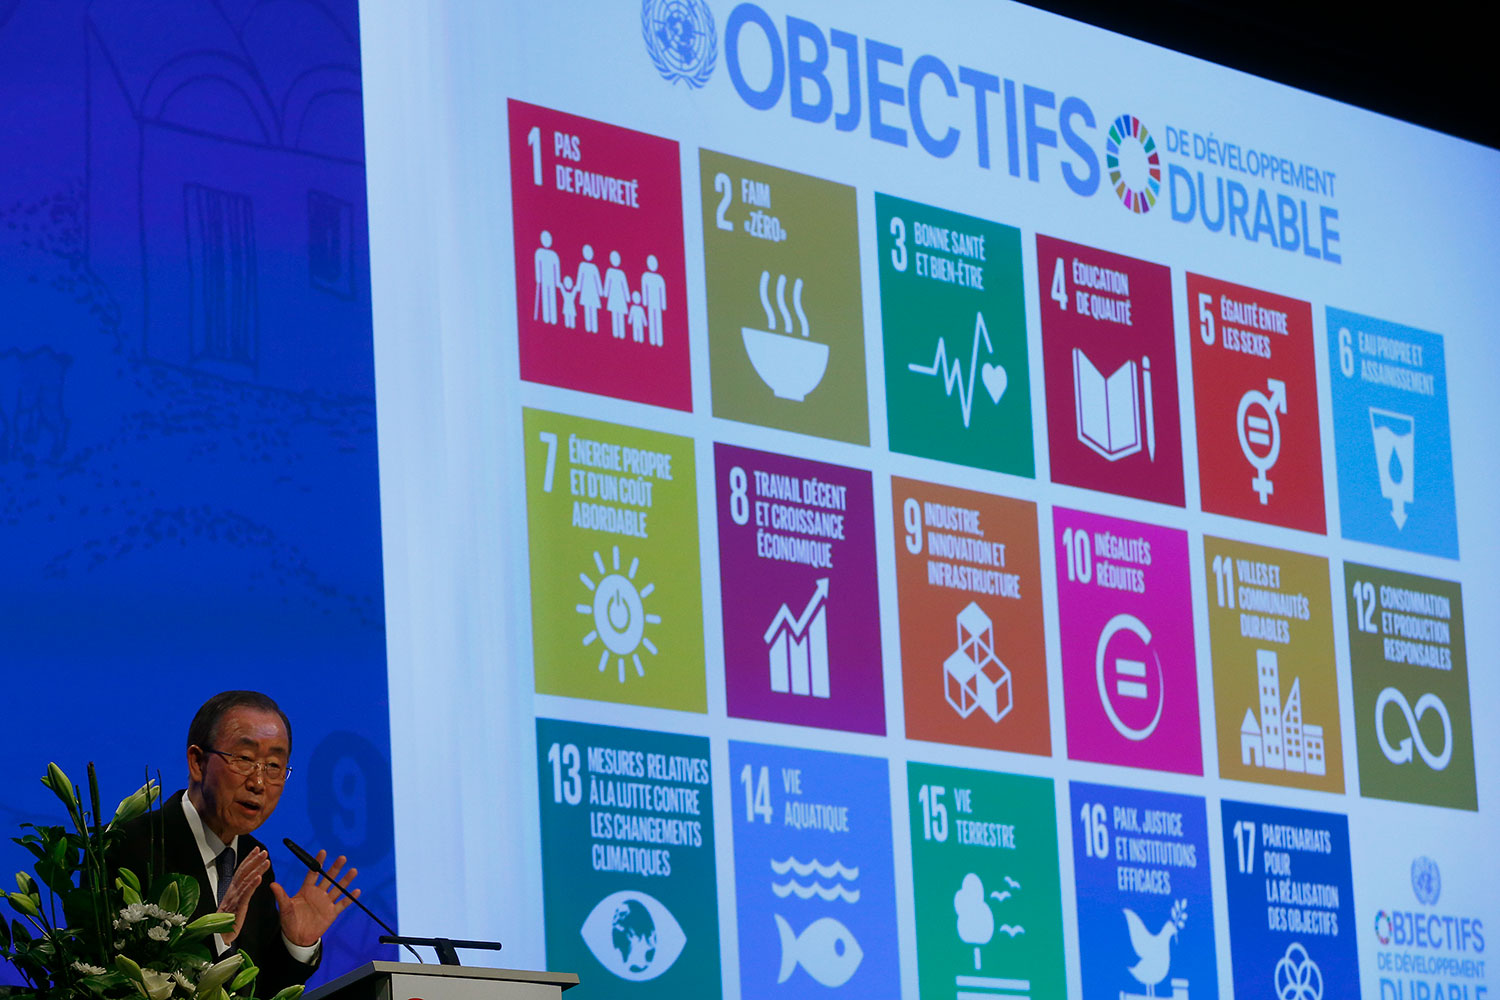 United Nations Secretary-General Ban Ki-Moon sits at a table on a stage with a large screen. The photo shows him in the corner of the frame. On the screen behind him are displayed pastel-colored icons representing the 17 goals of UN's 2030 Agenda for Sustainable Development.